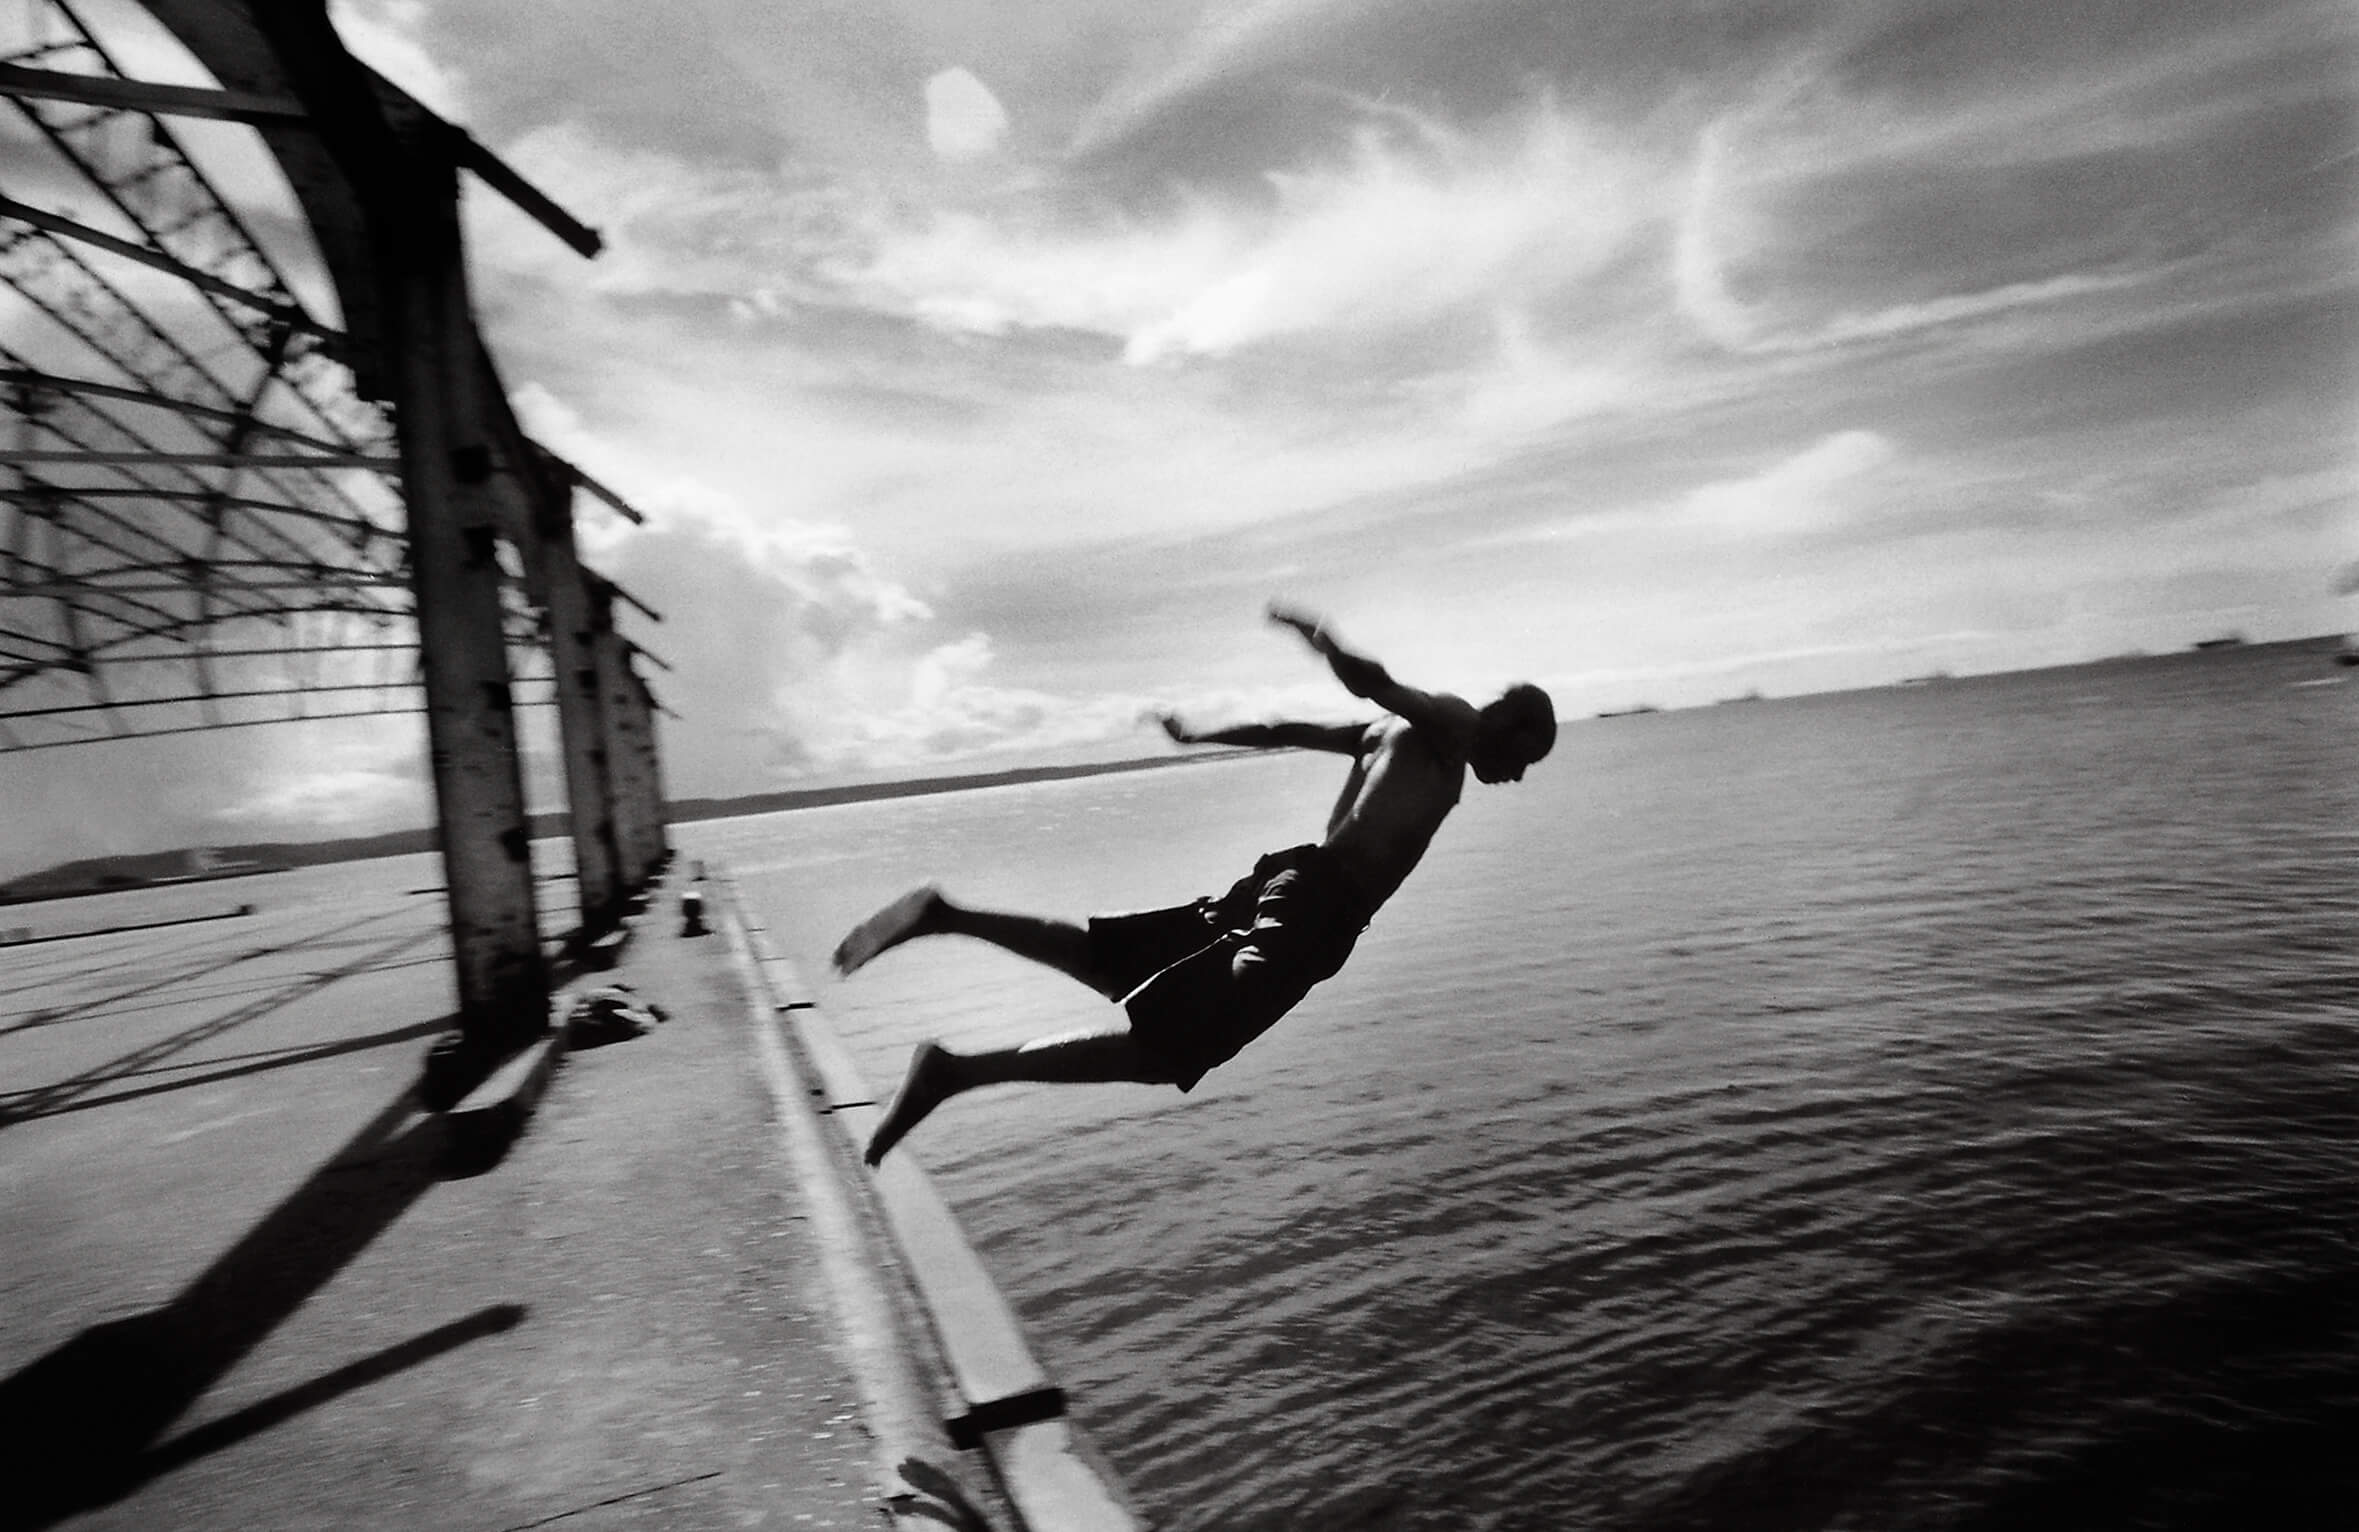 Abigail Hadeed, Dive Canal (1998), from the R_C book, Pictures from Paradise